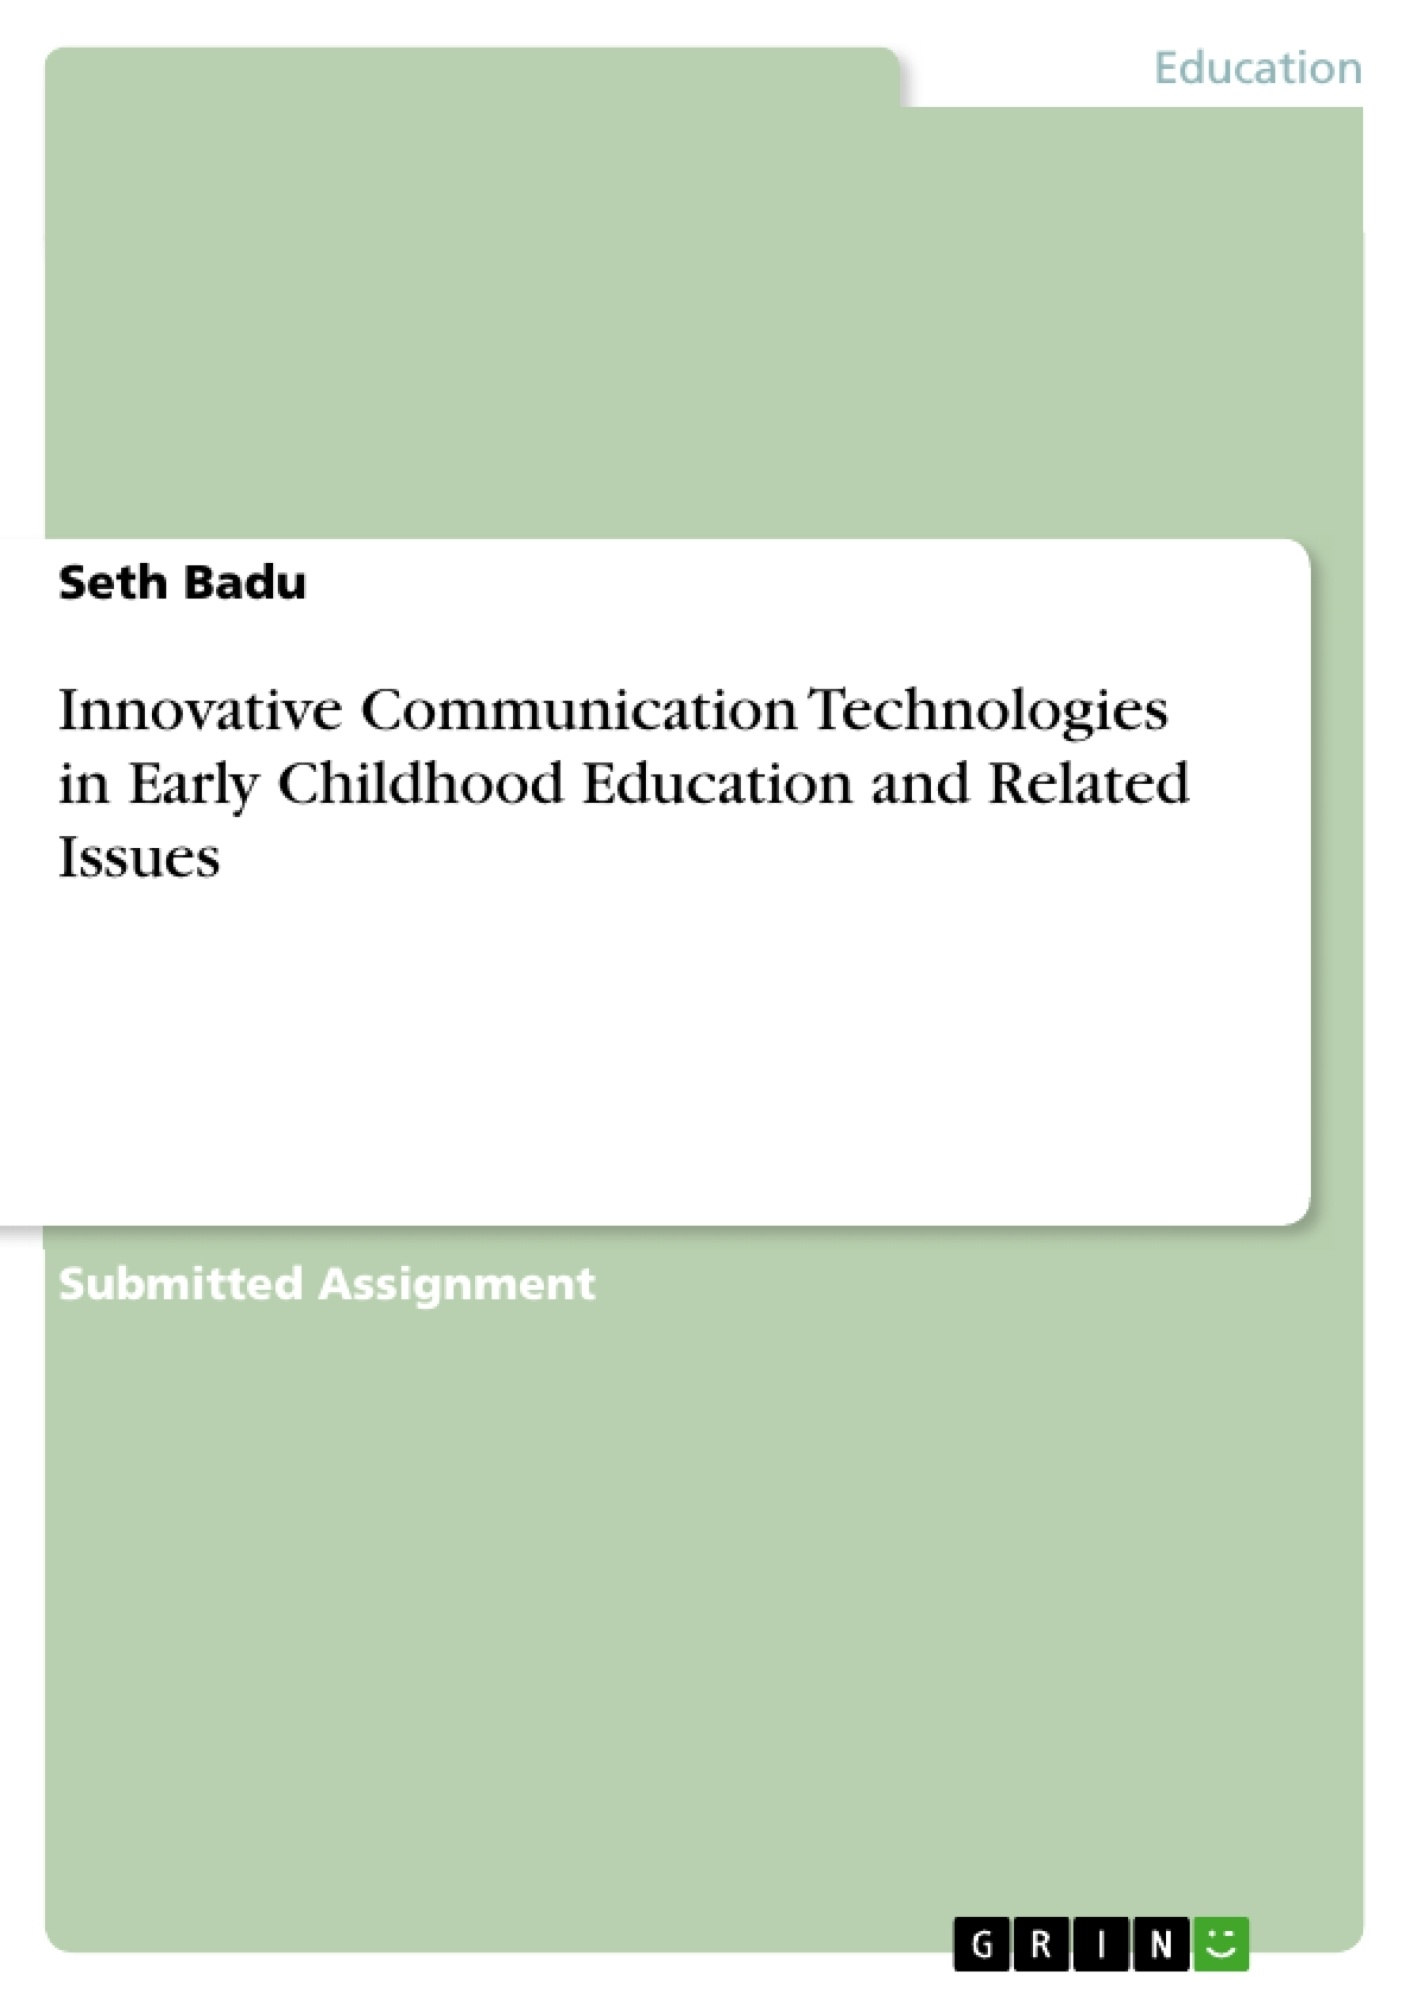 Title: Innovative Communication Technologies in Early Childhood Education and Related Issues